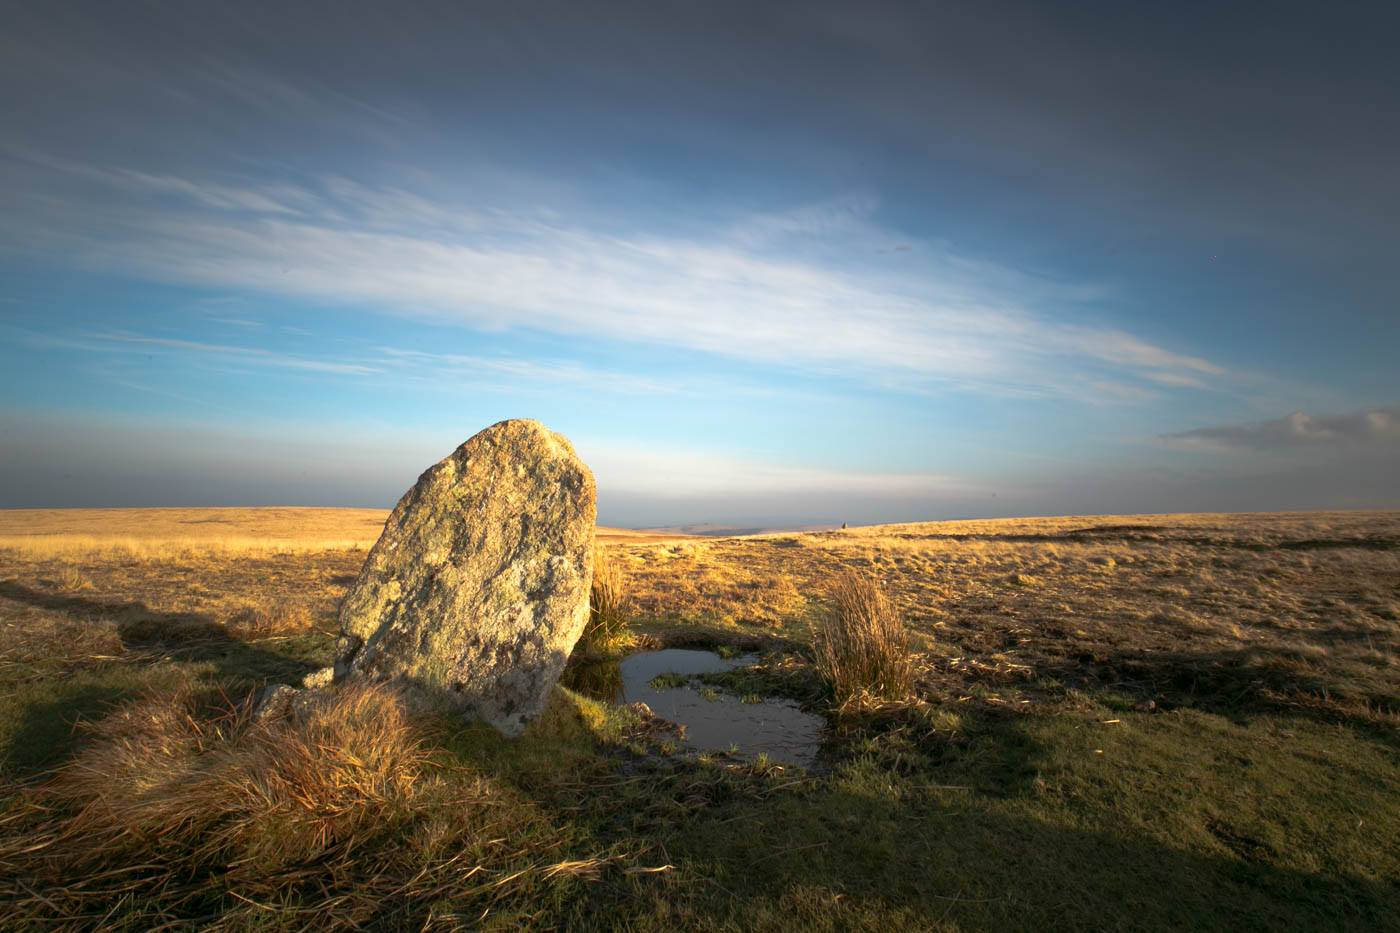 One of the stones of White Moor Stone Circle on Dartmoor National Park